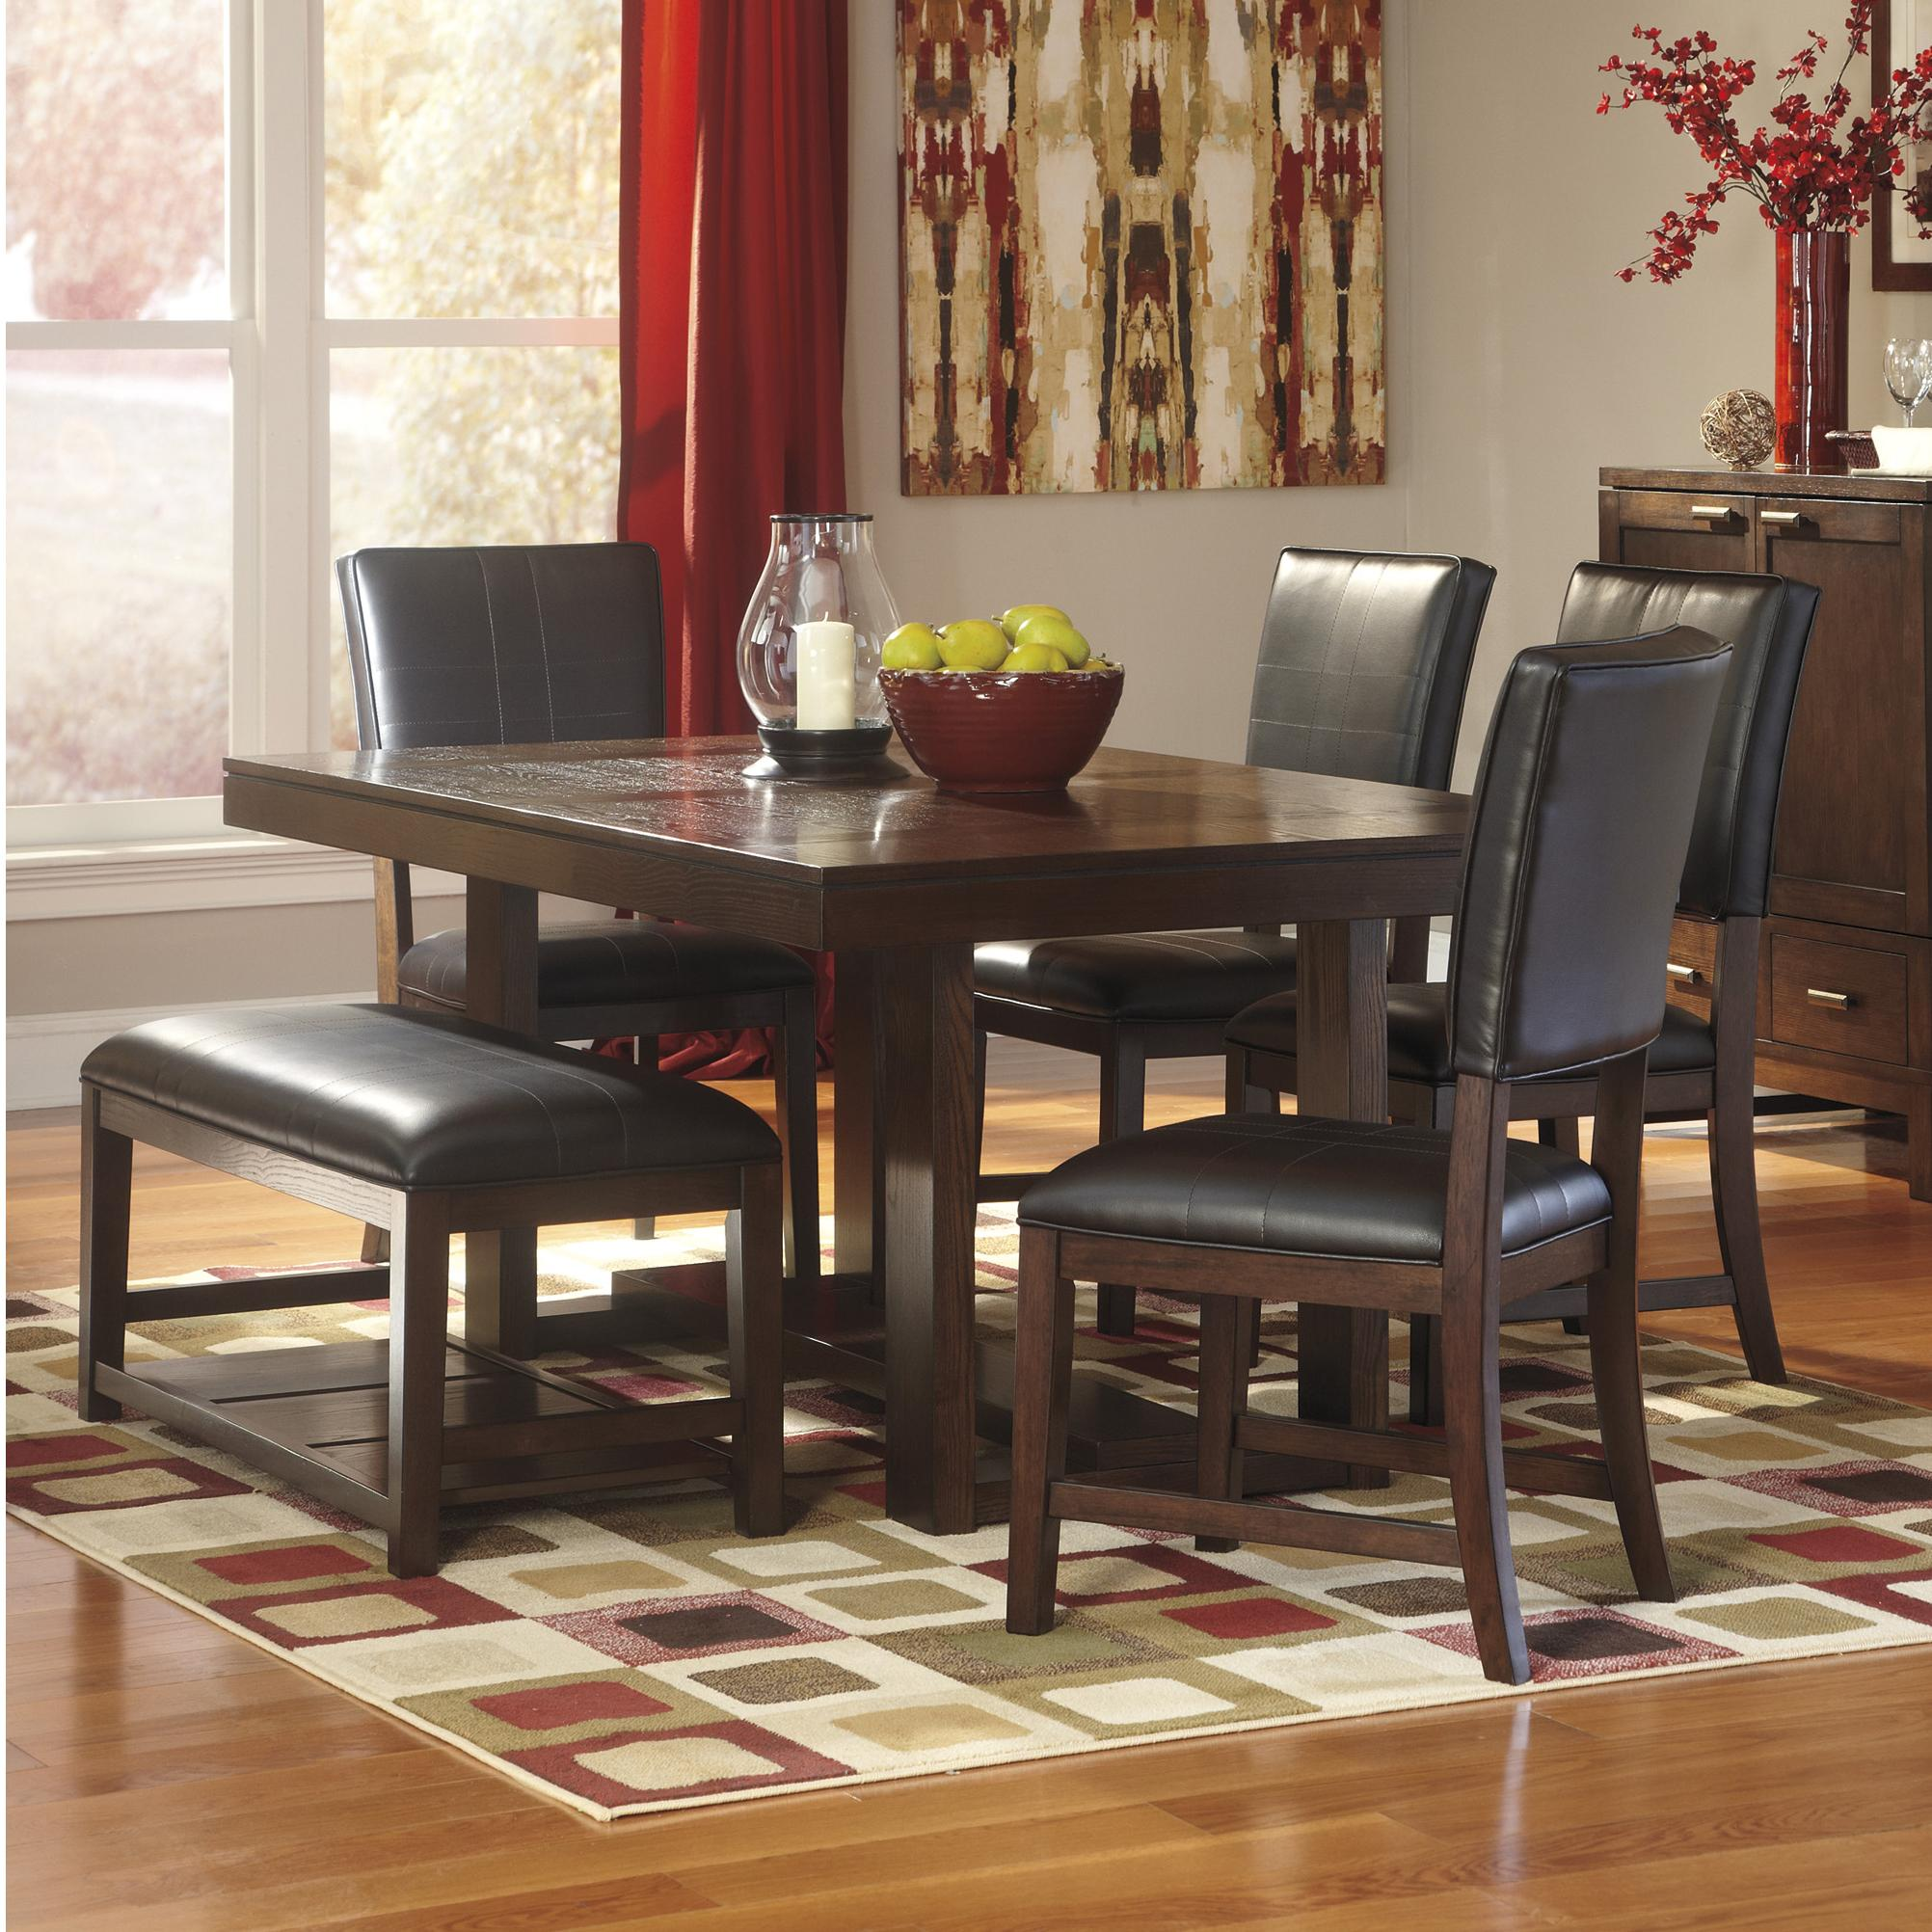 Signature Design by Ashley Watson Contemporary 6 Piece Dining